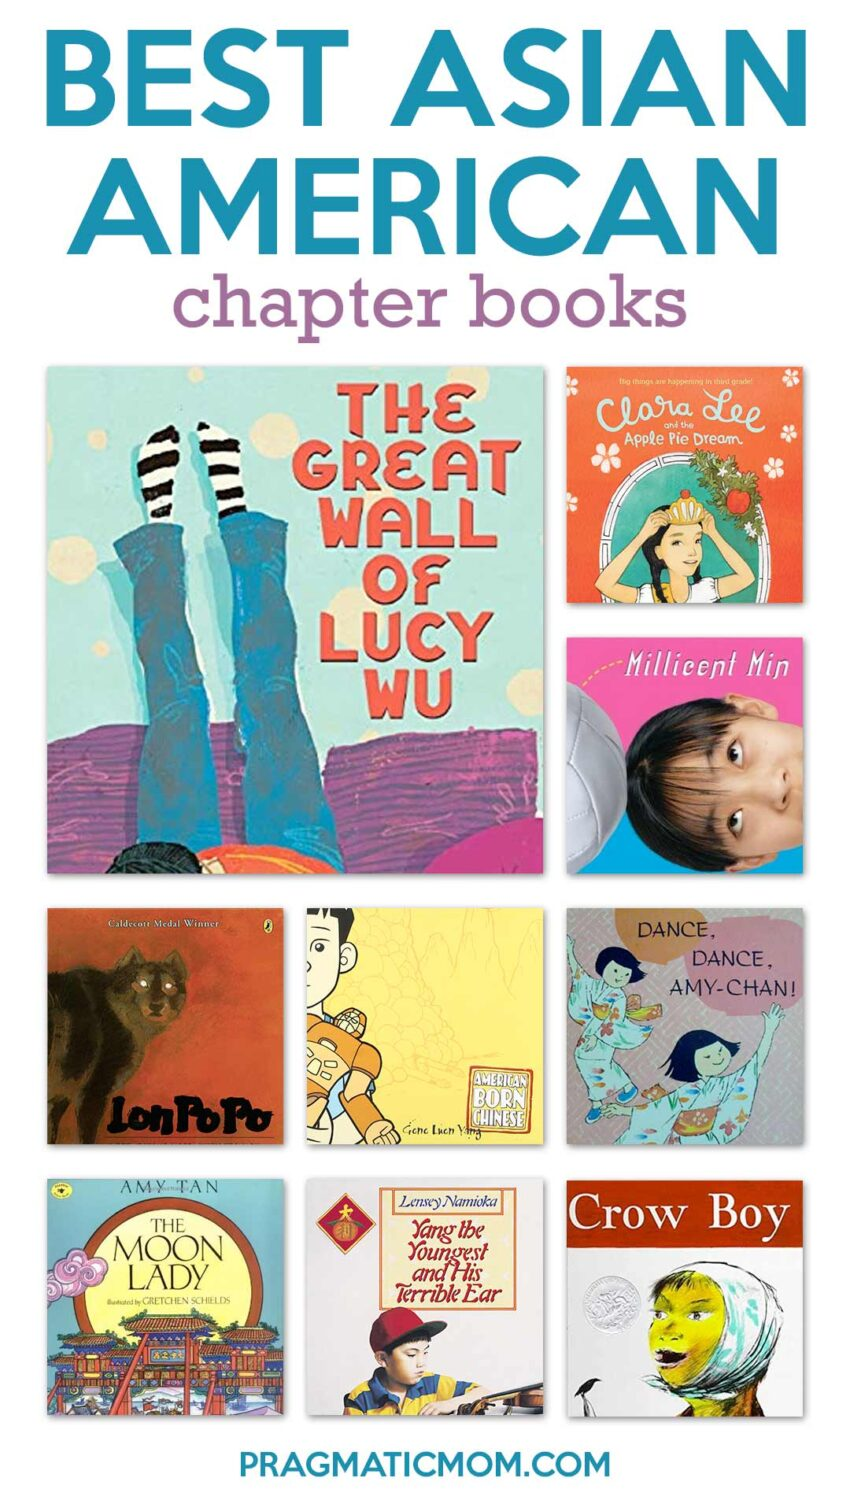 Best Asian American Chapter Books